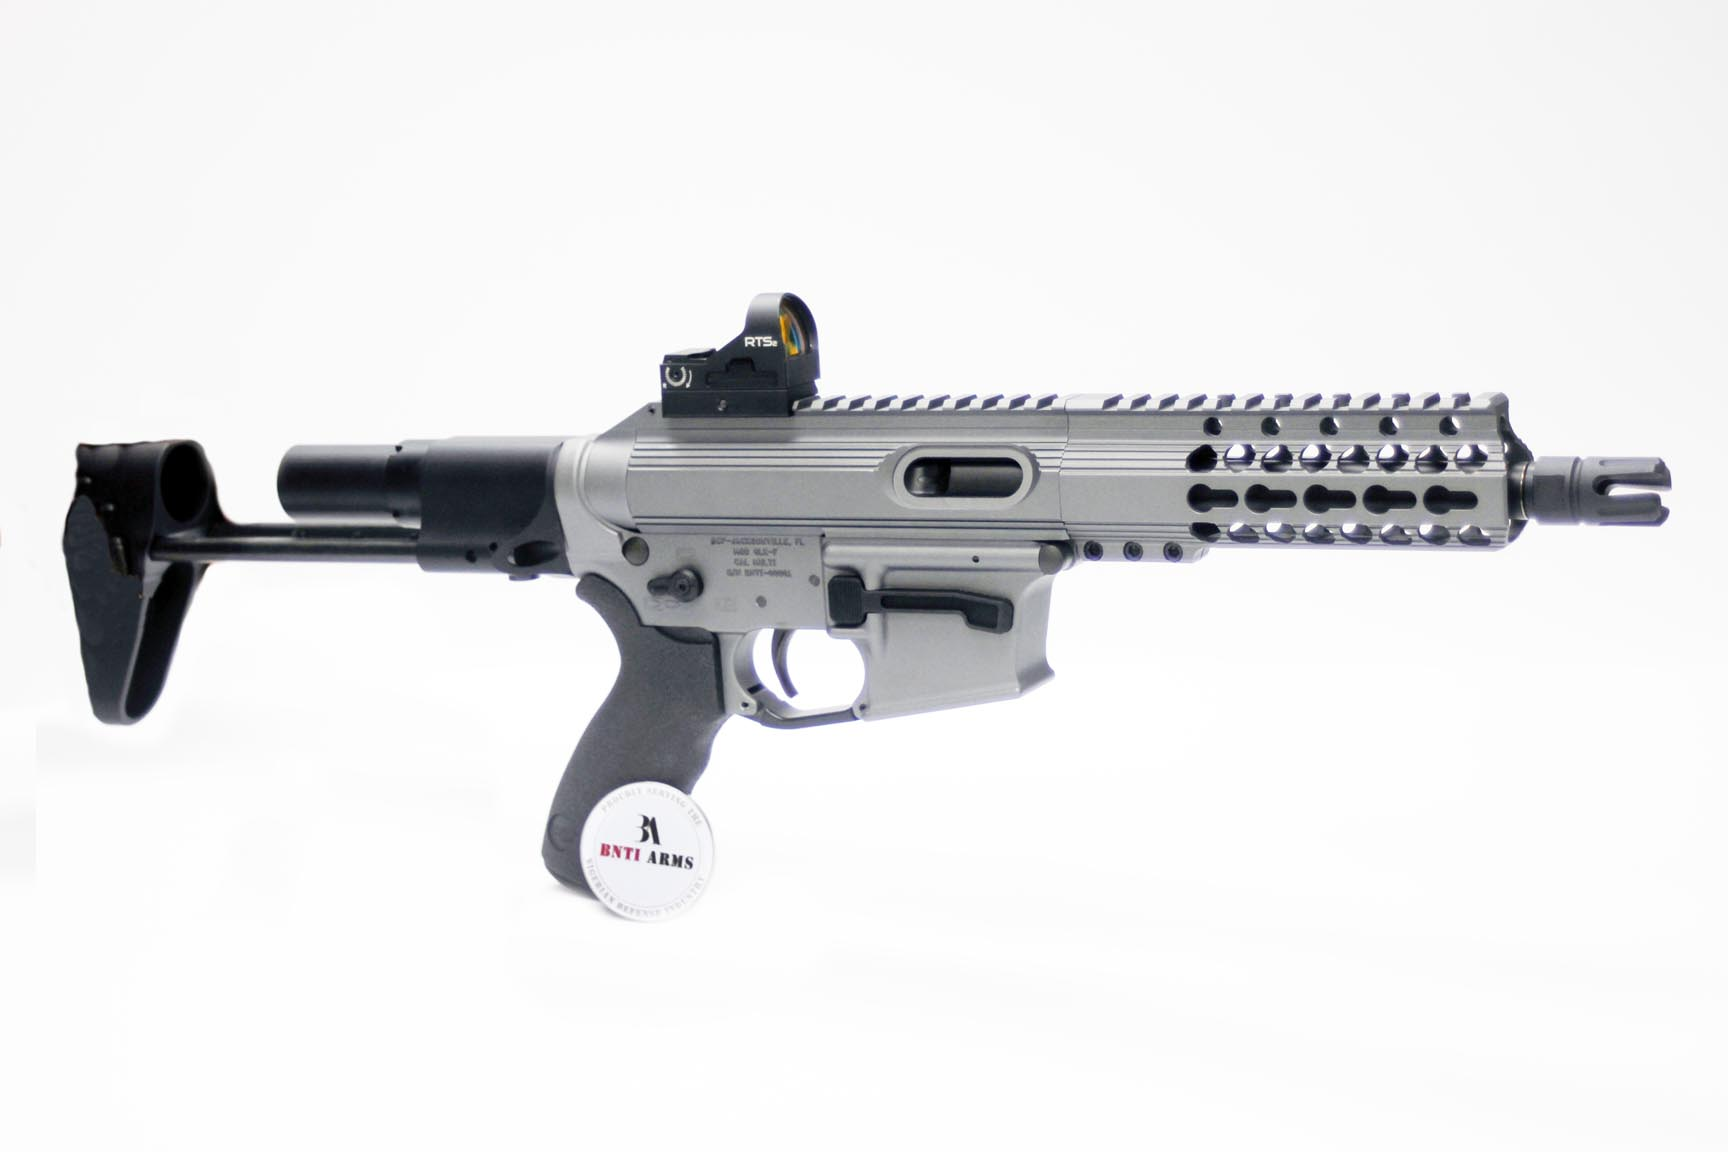 BNTI ARMS Will Unveil the 9mm BNTI ARMS Carbine at the 2017 SHOT Show